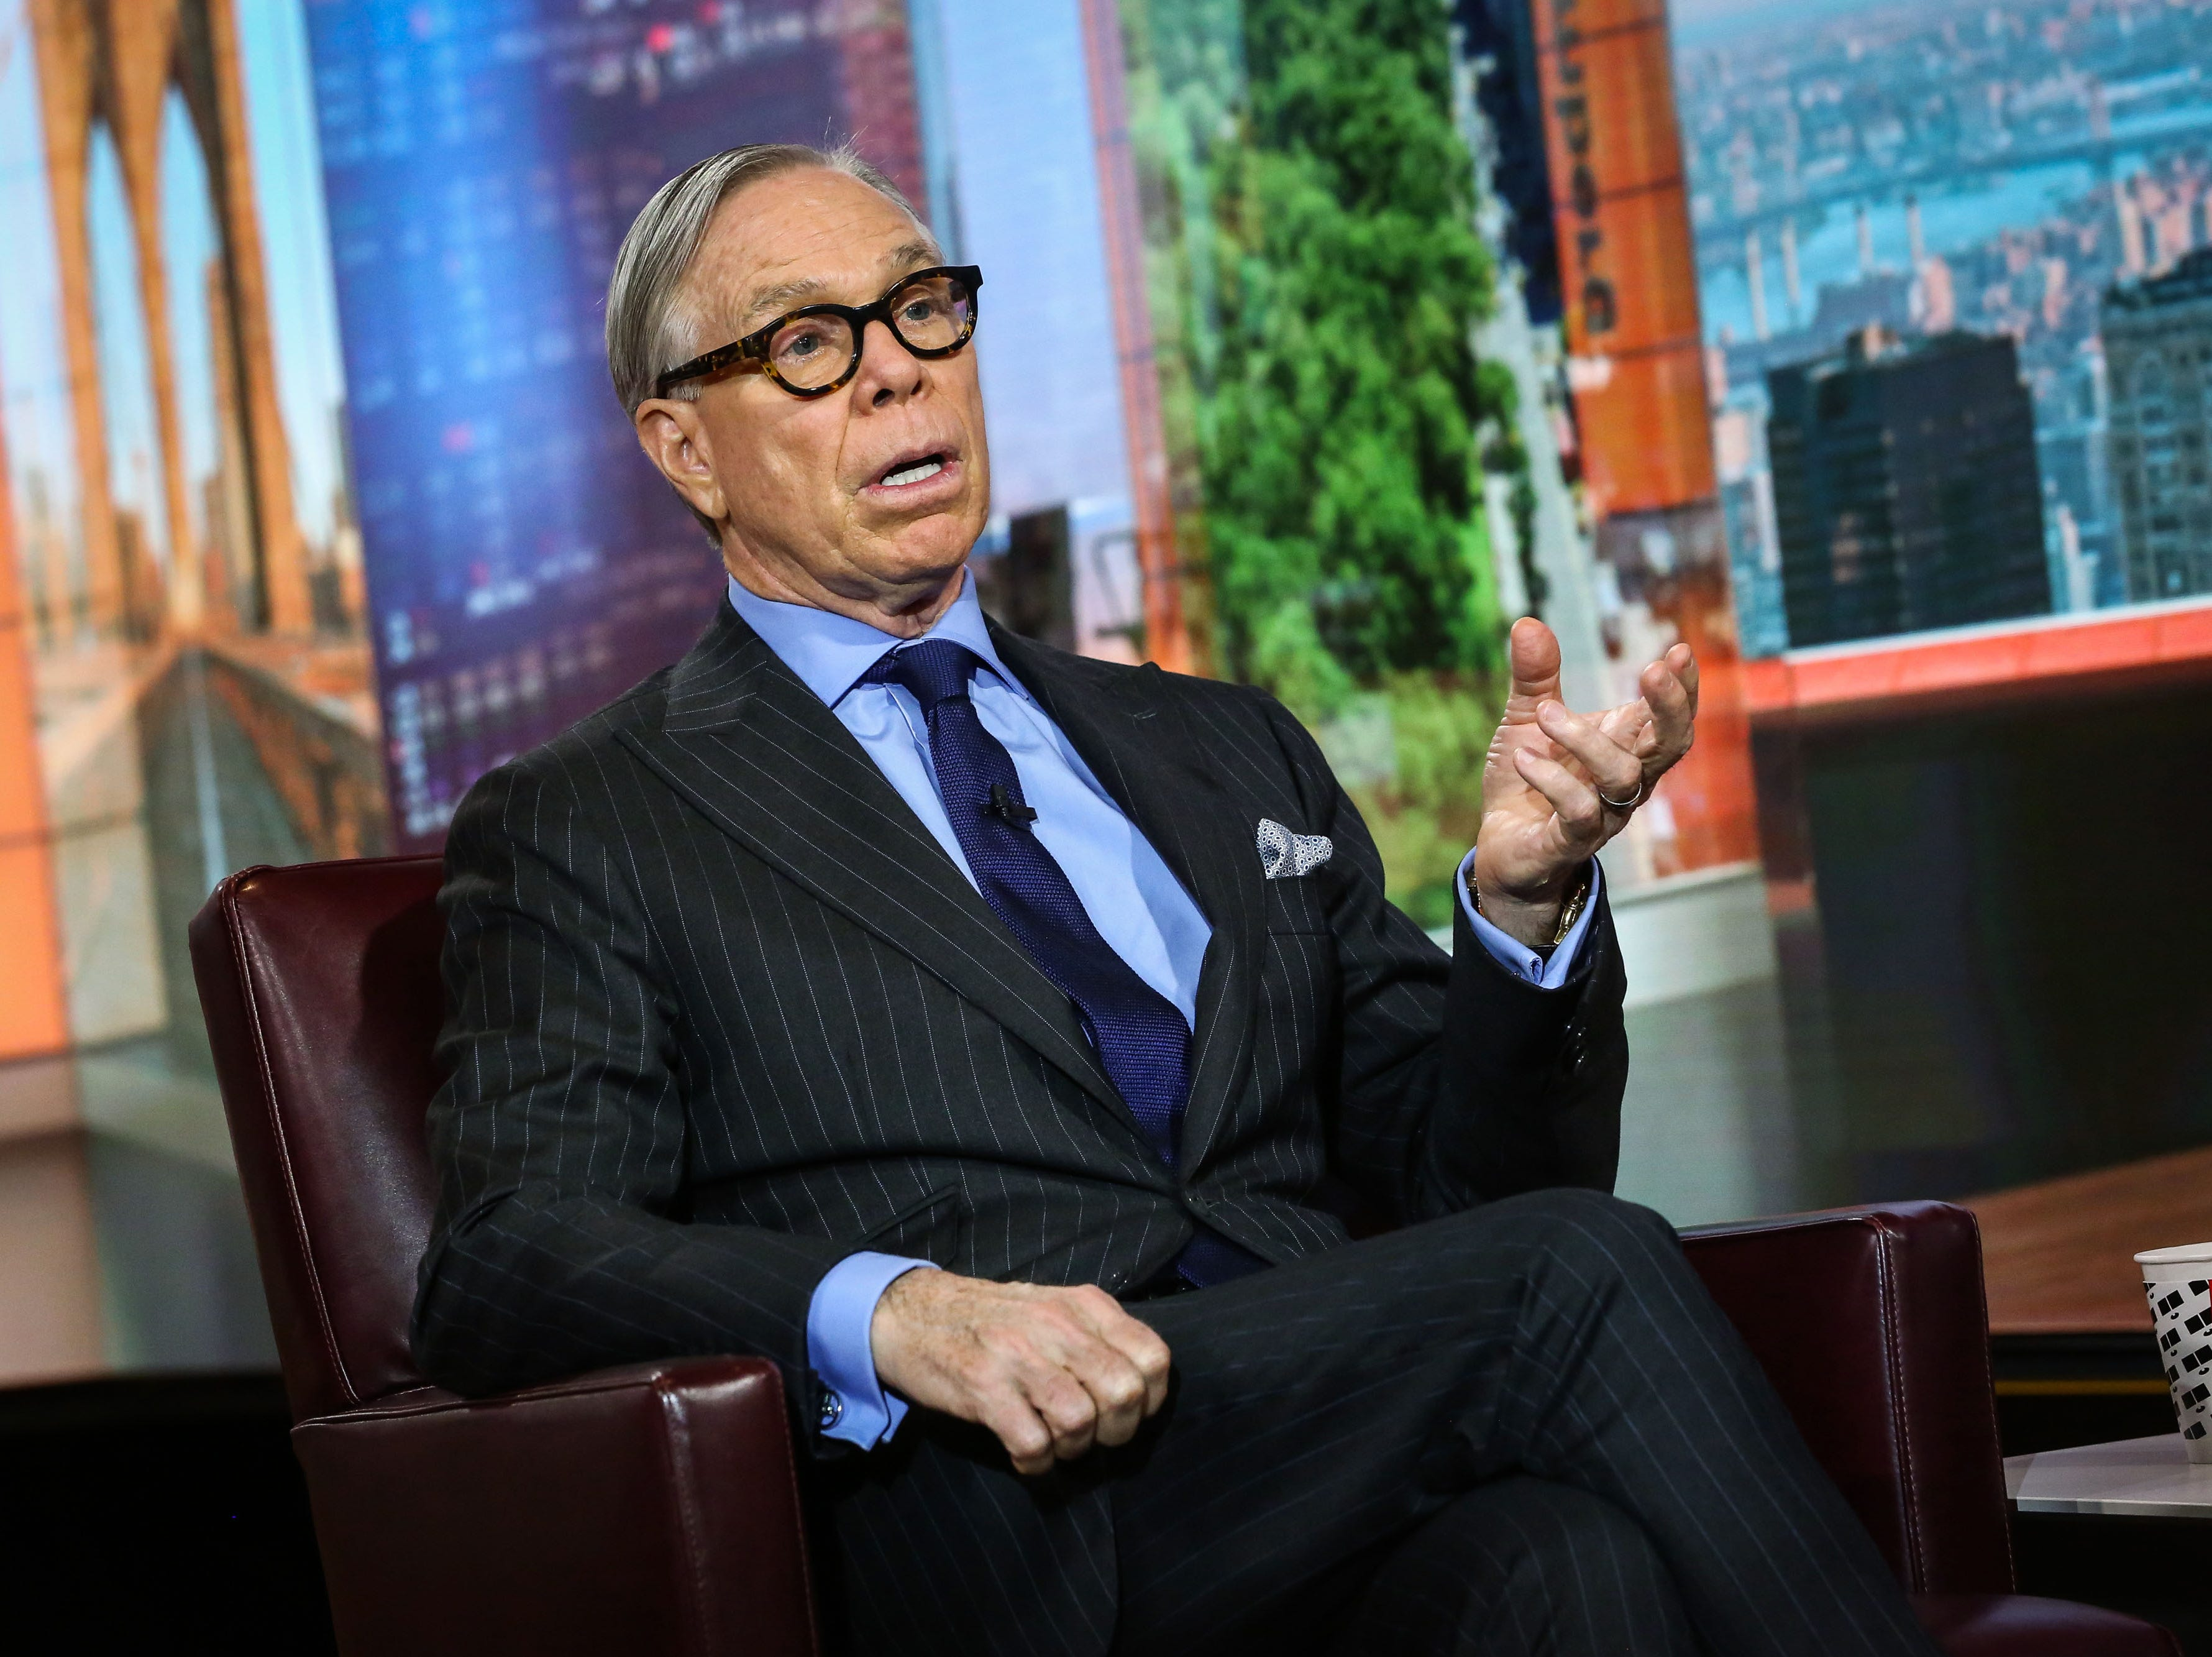 Tommy Hilfiger speaks during a Bloomberg Television interview in New York on Oct. 25, 2017. Hilfiger was born in Elmira, NY.